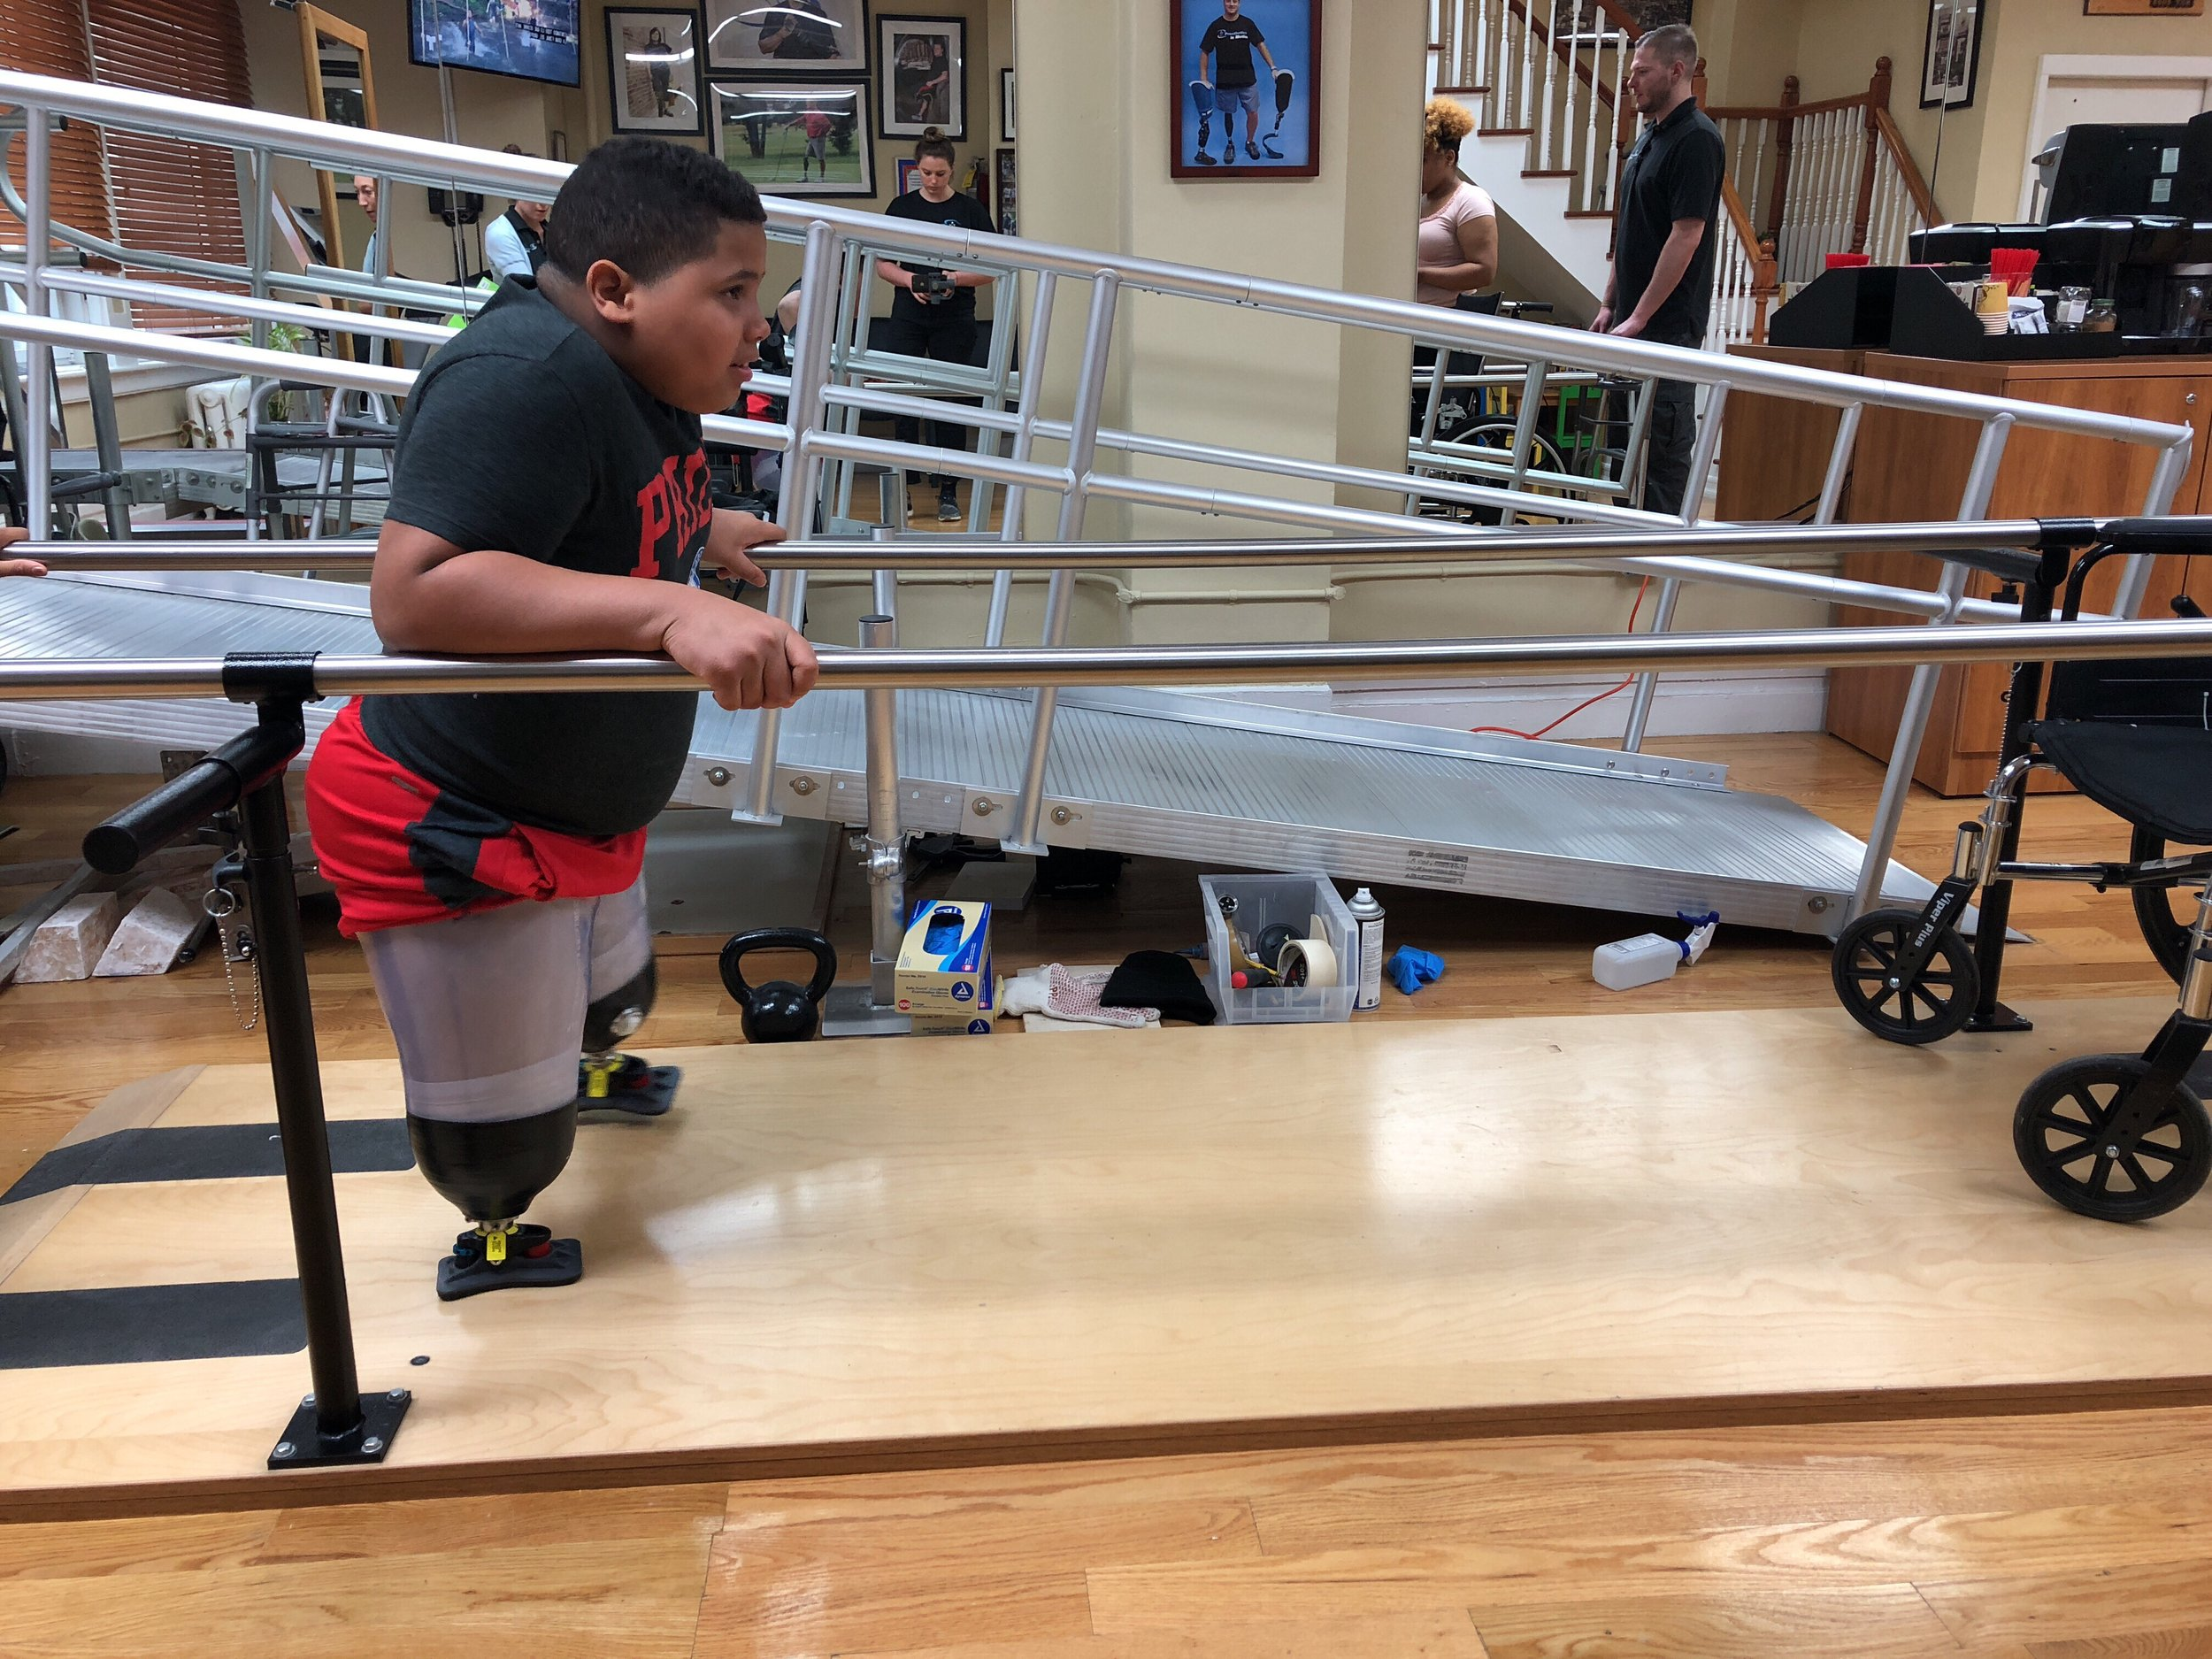 Weslie - As Weslie recently lost both his legs above the knee, ASPIRE provided Weslie with SideKicks. Helping Weslie build up his strength and better prepare him for his walking prostheses